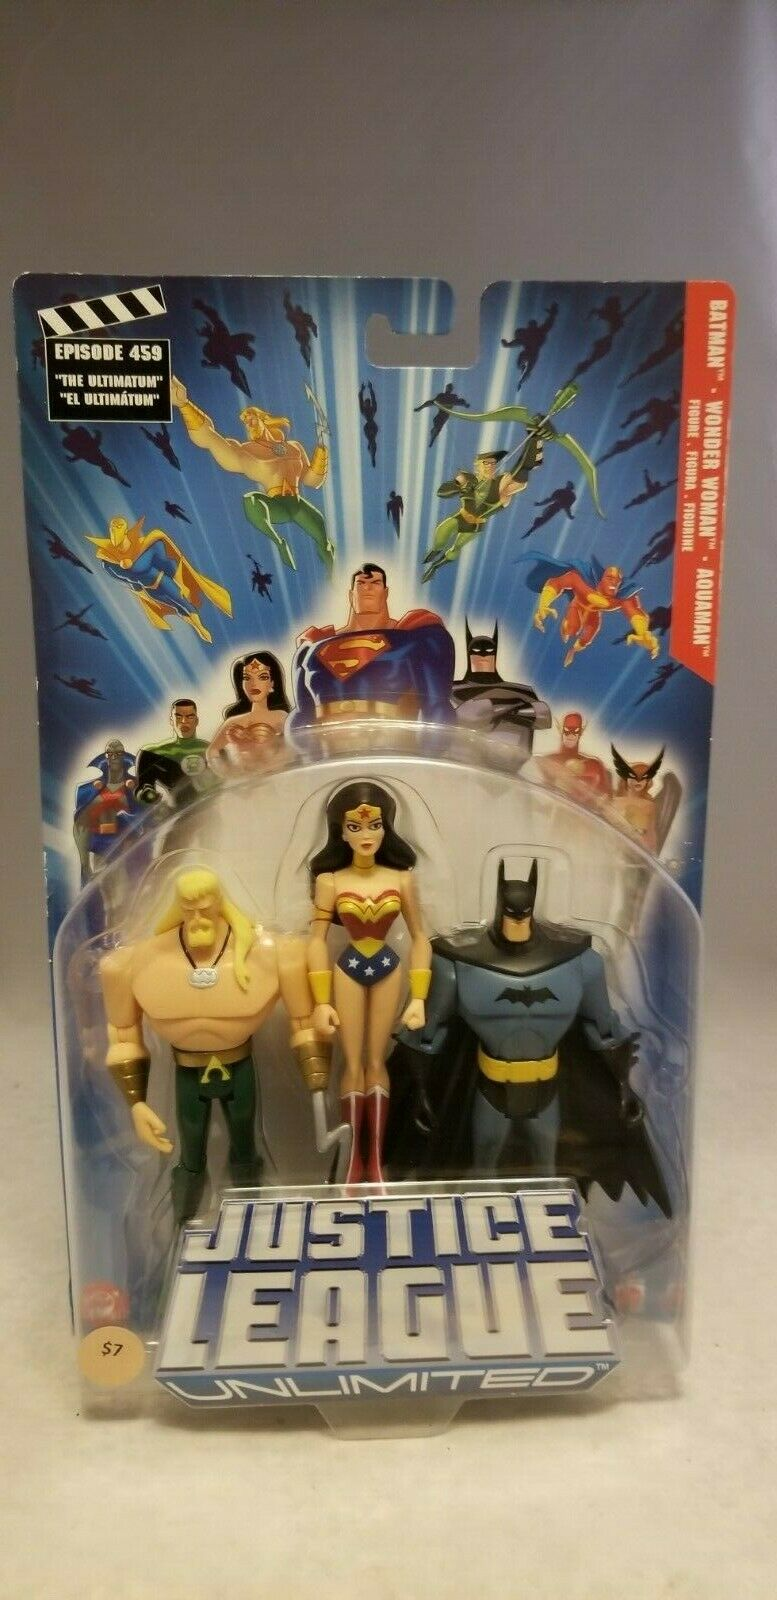 2005 JUSTICE LEAGUE UNLIMITED BATMAN, WONDER WOMAN, AQUAMAN 3 PACK